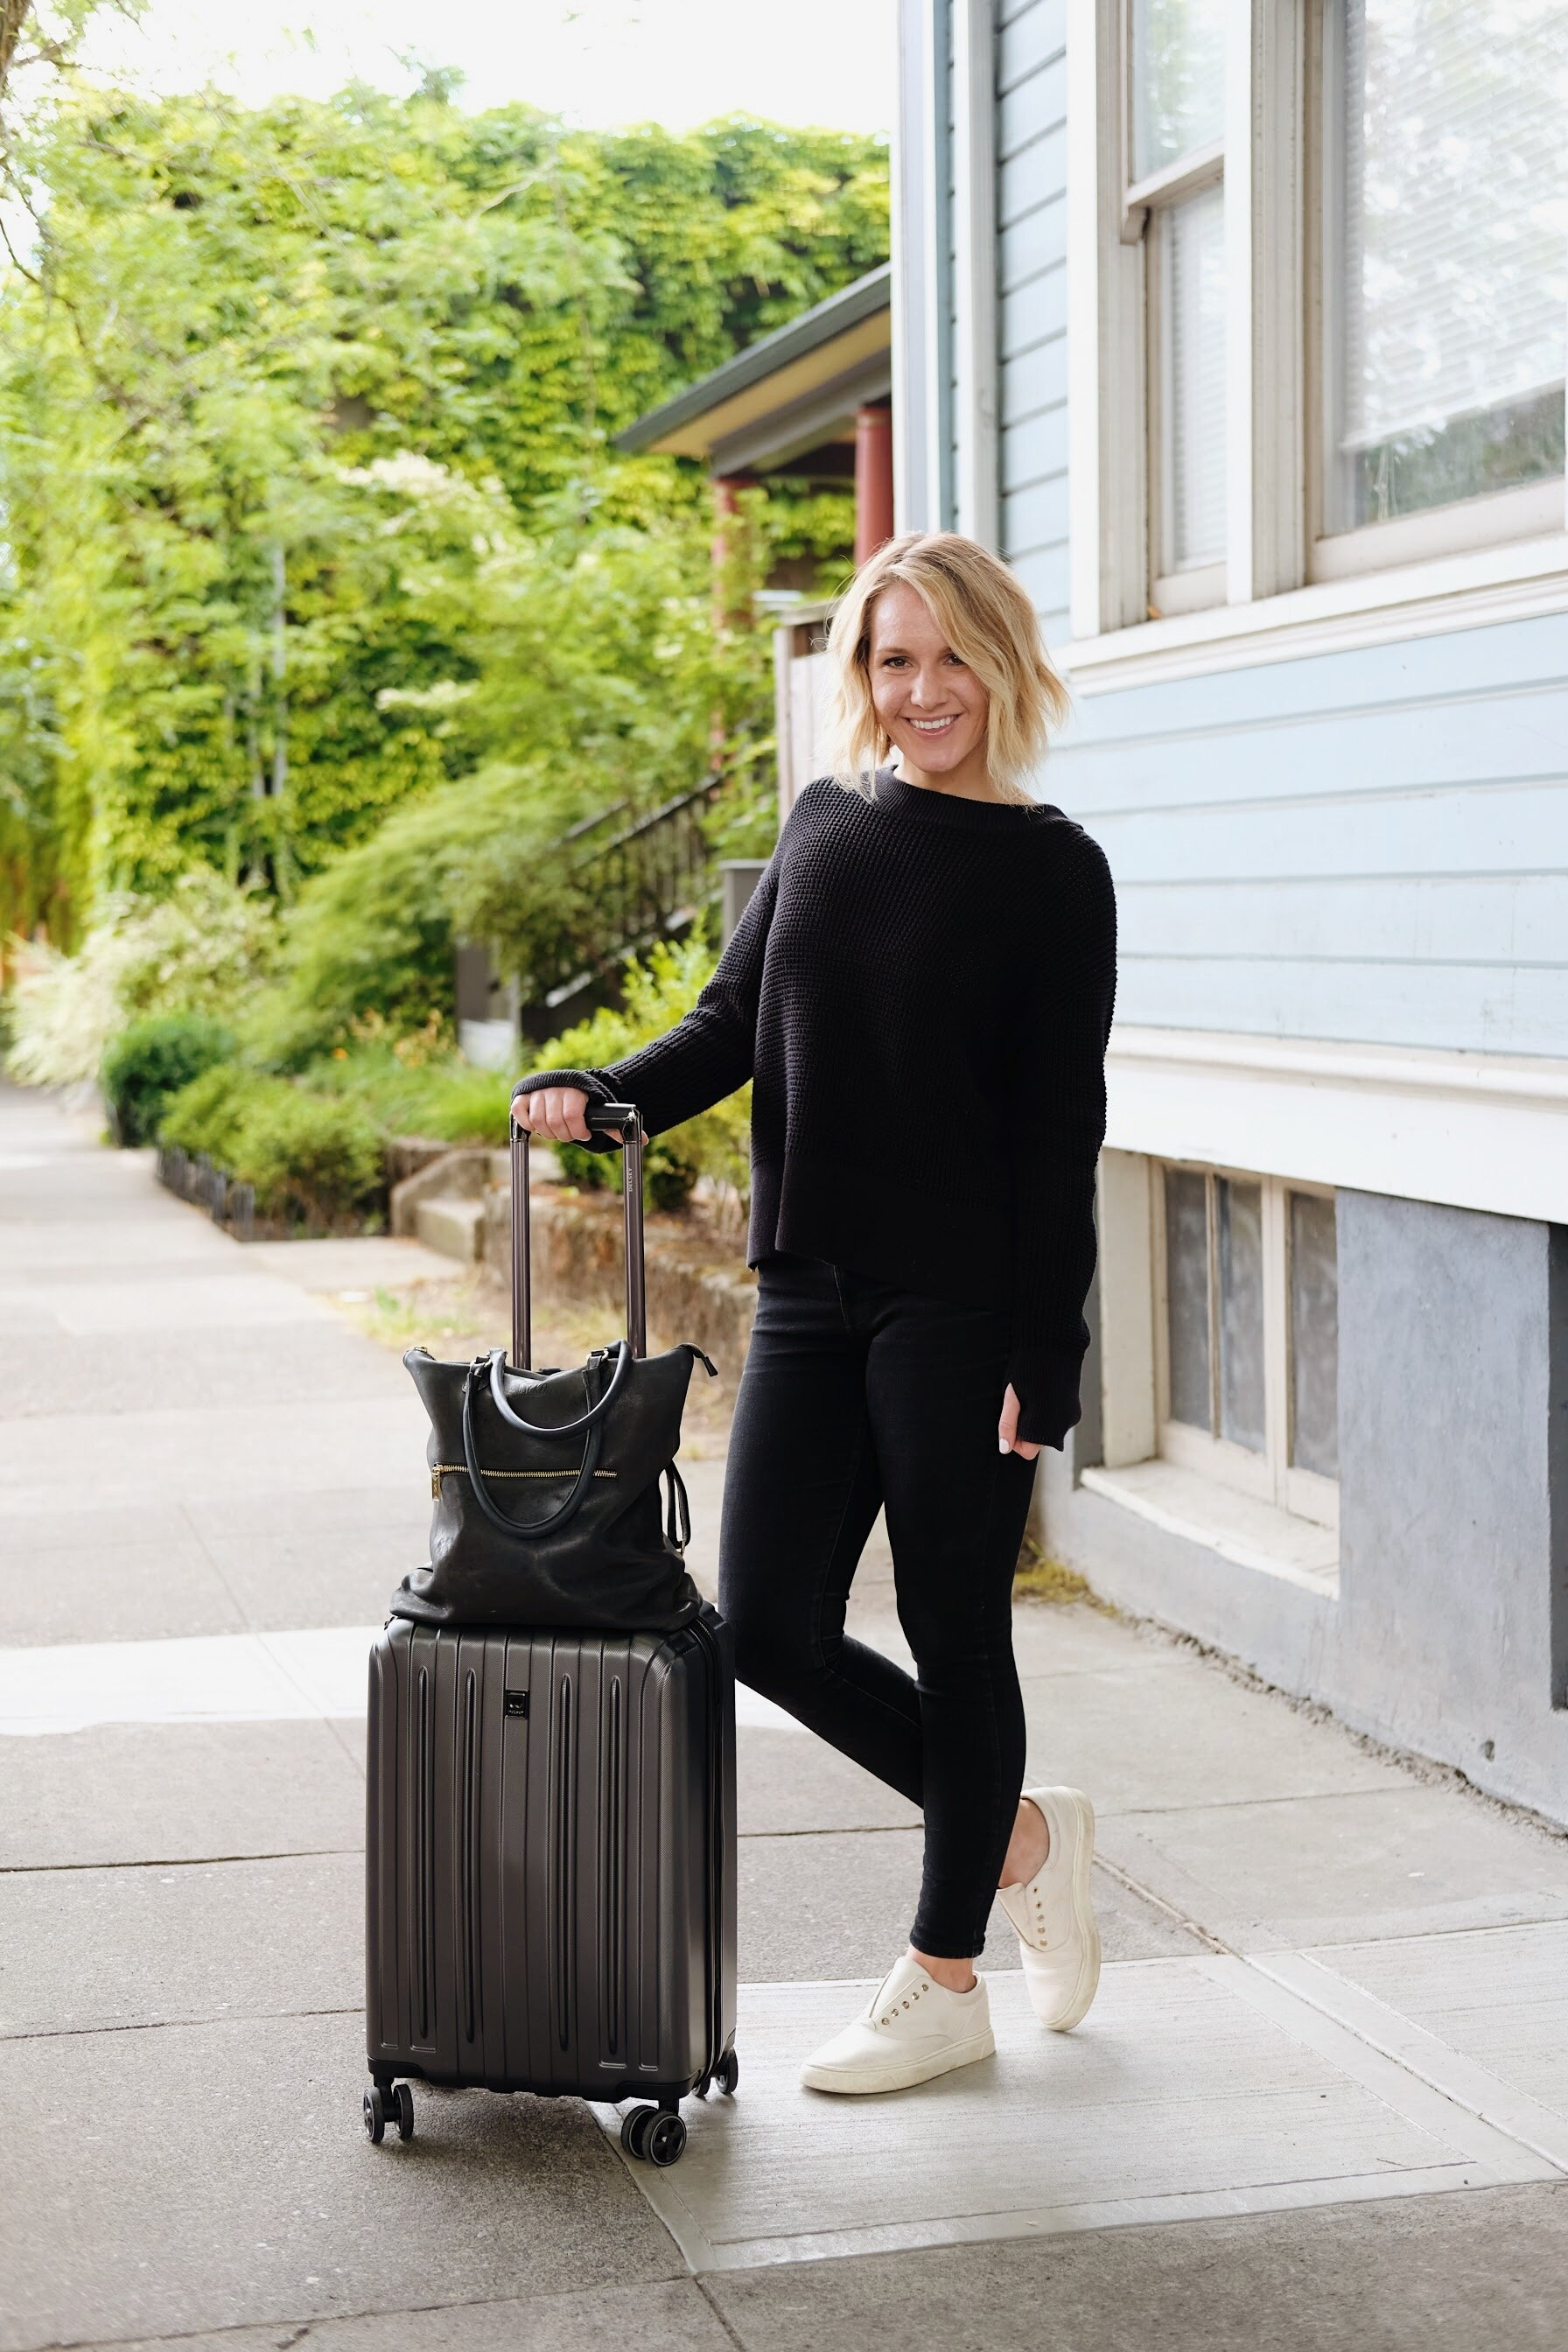 International travel outfit idea // A Week Of Minimalist Travel Outfits With Ellie Hughes From Selflessly Styled on The Good Trade